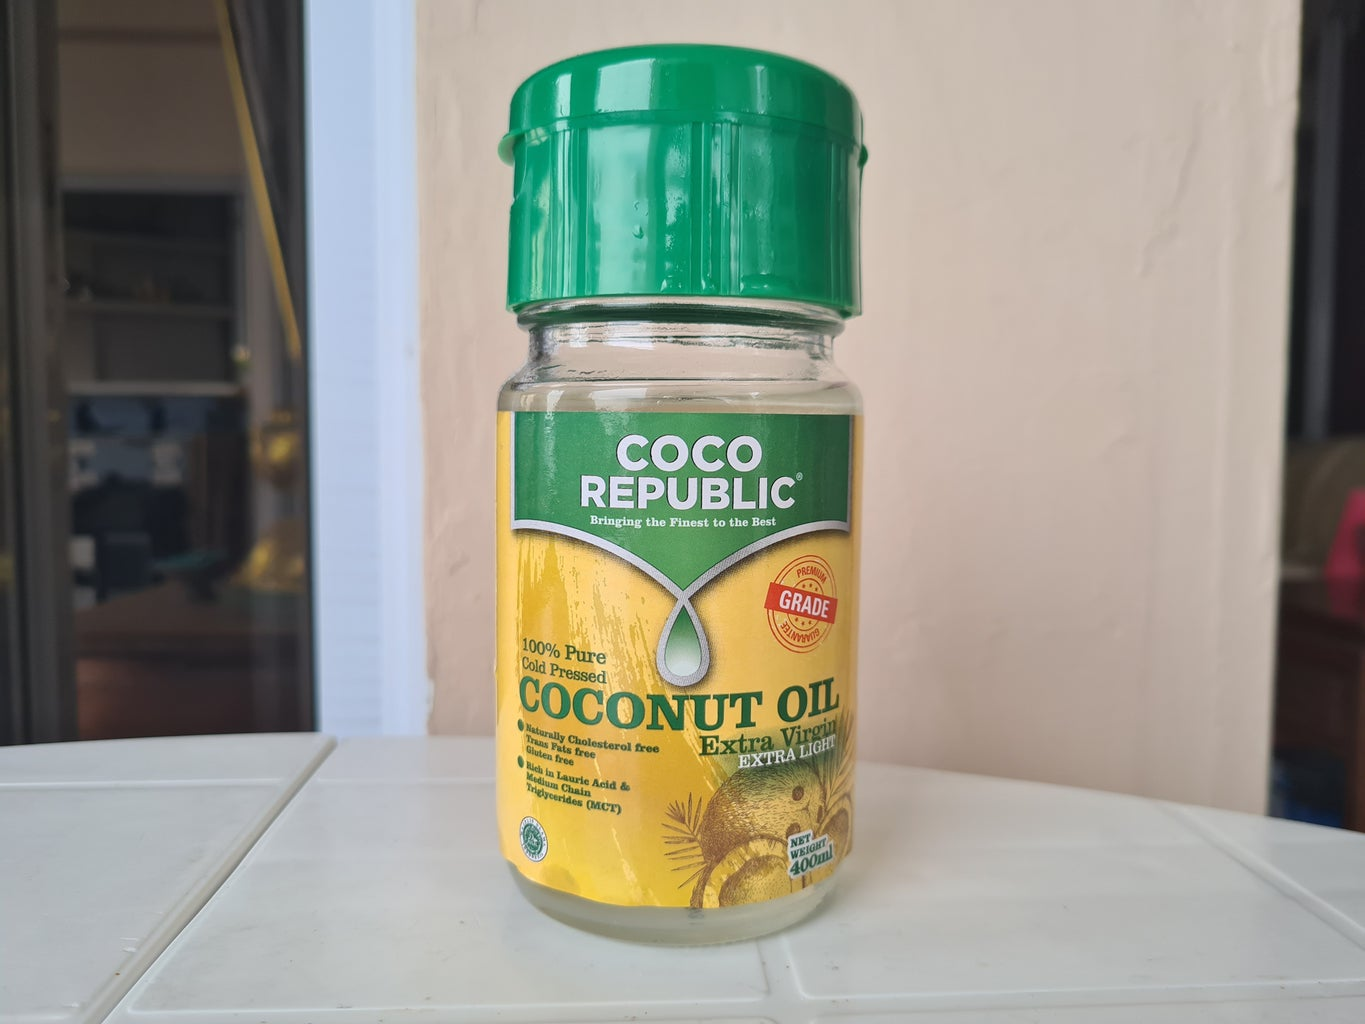 How to Use Coconut Oil on Skin